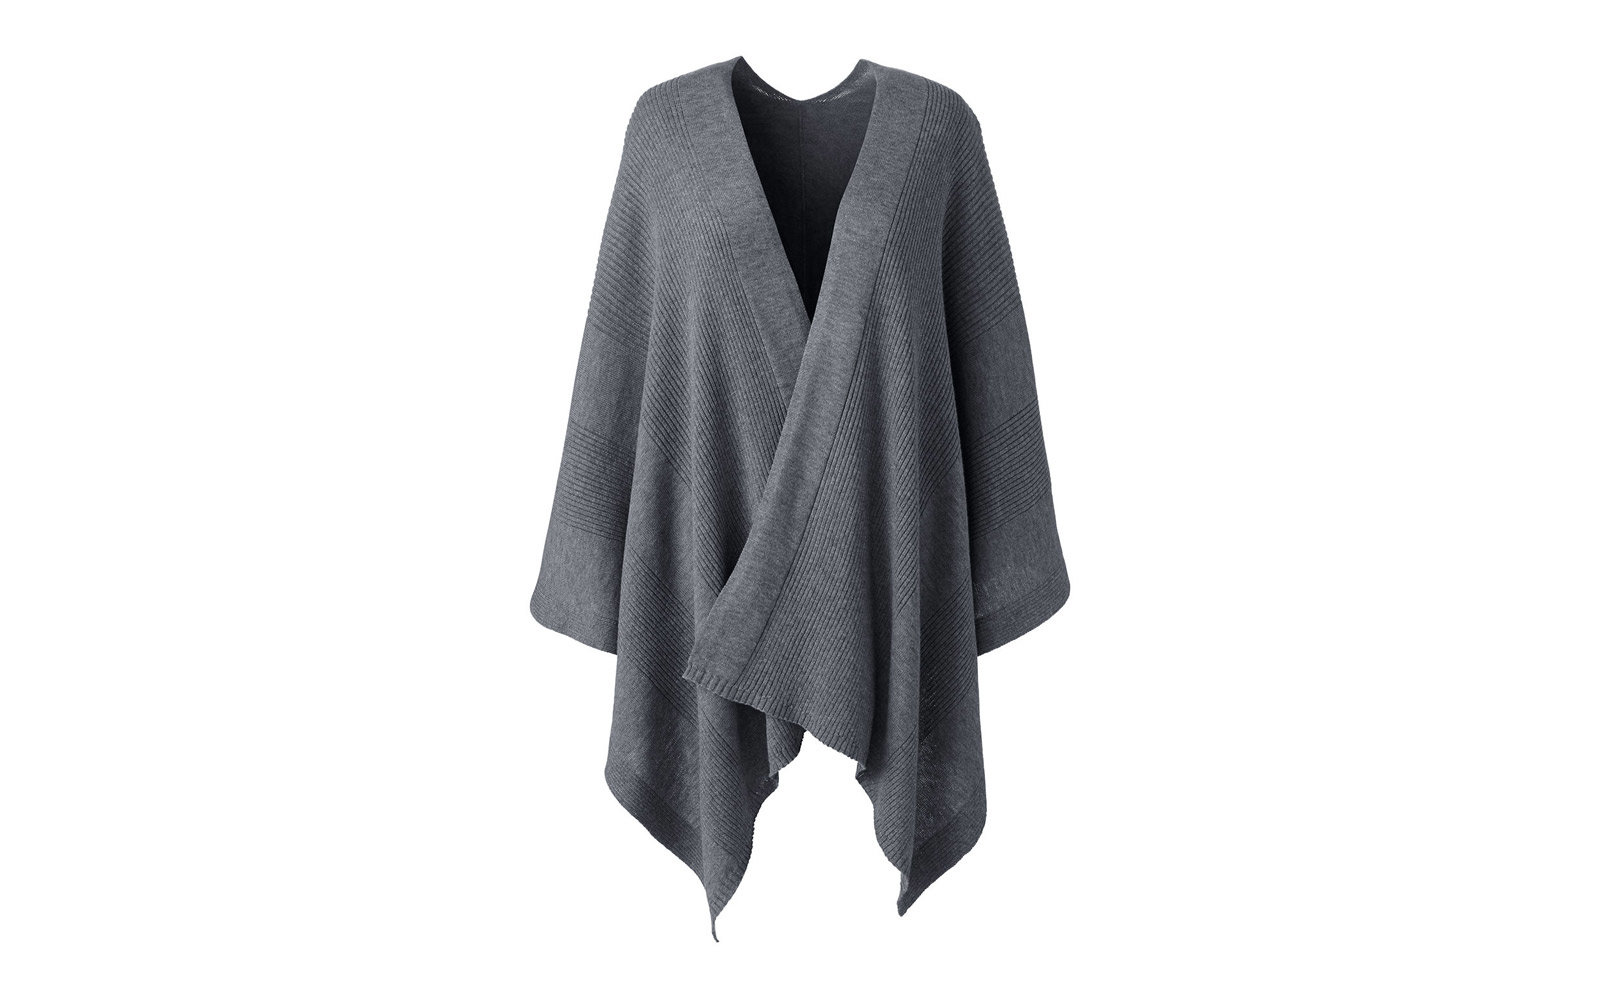 The Best Travel Wraps Ponchos And Scarves Leisure Silk Mohair Shawlette Allfreecrochetcom Lands End Knit Shawl Wrap